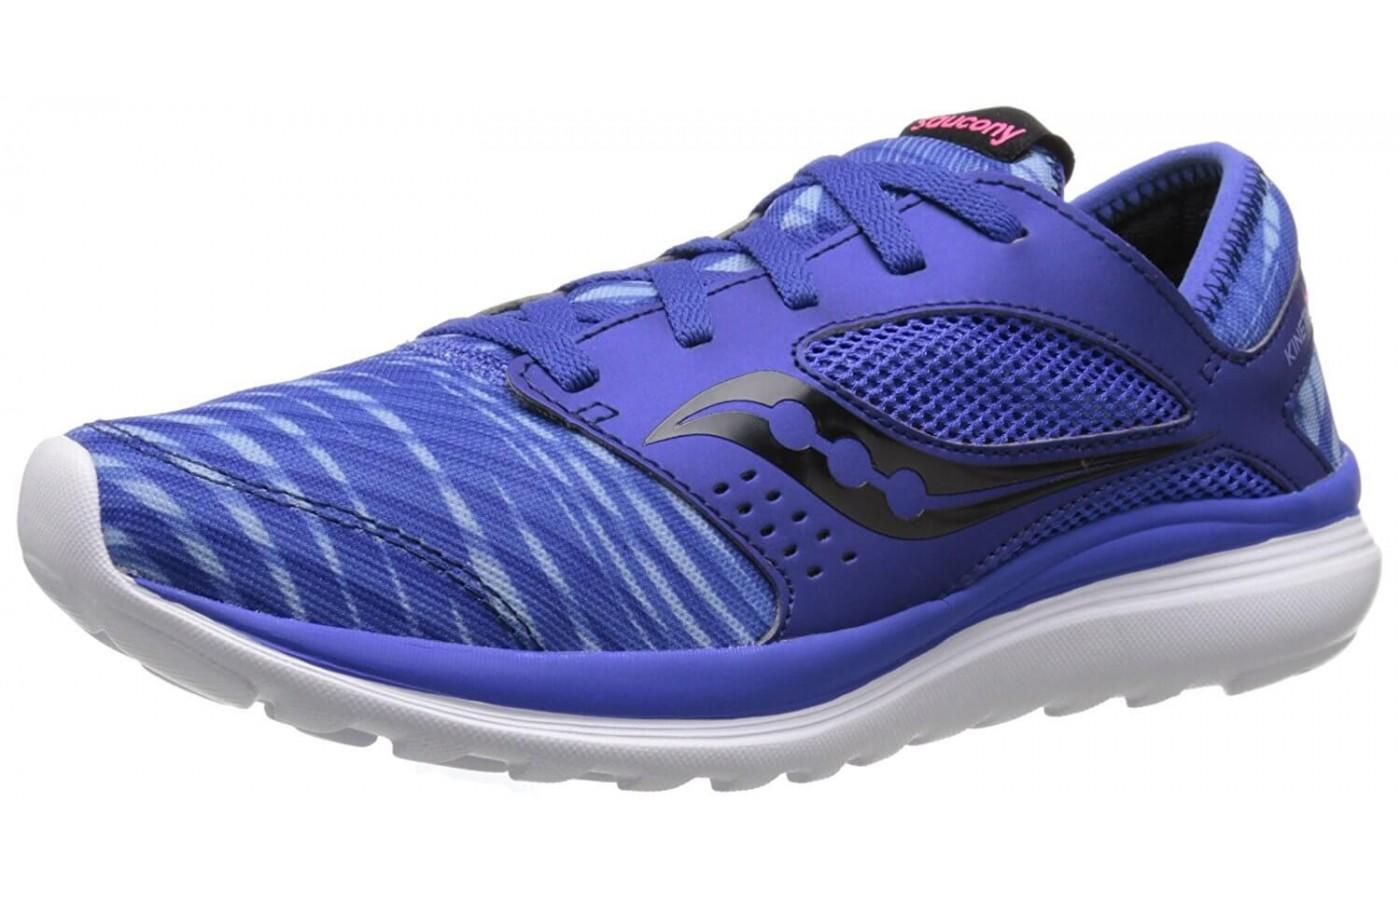 Saucony Kineta Relay in women's purple colorway